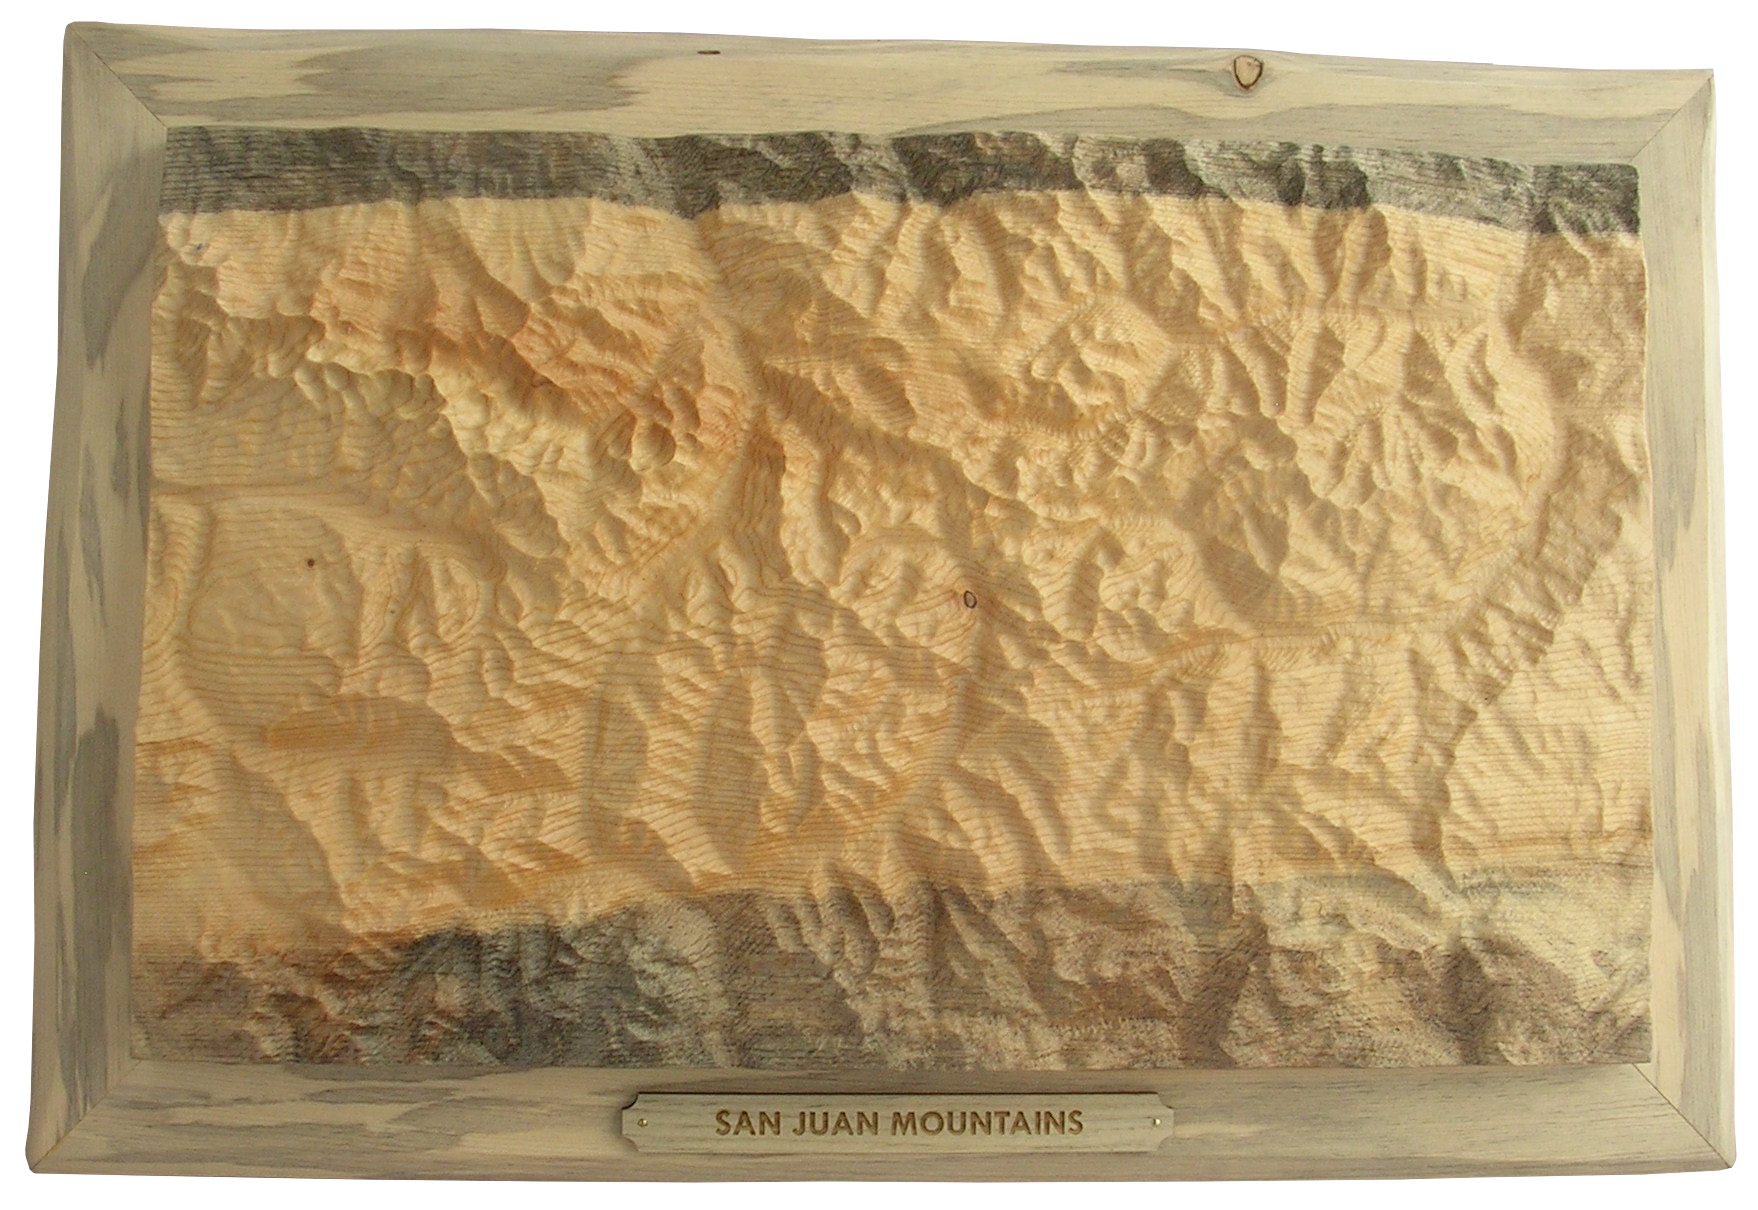 San-Juan-Mountains-Carving-Gift.jpg